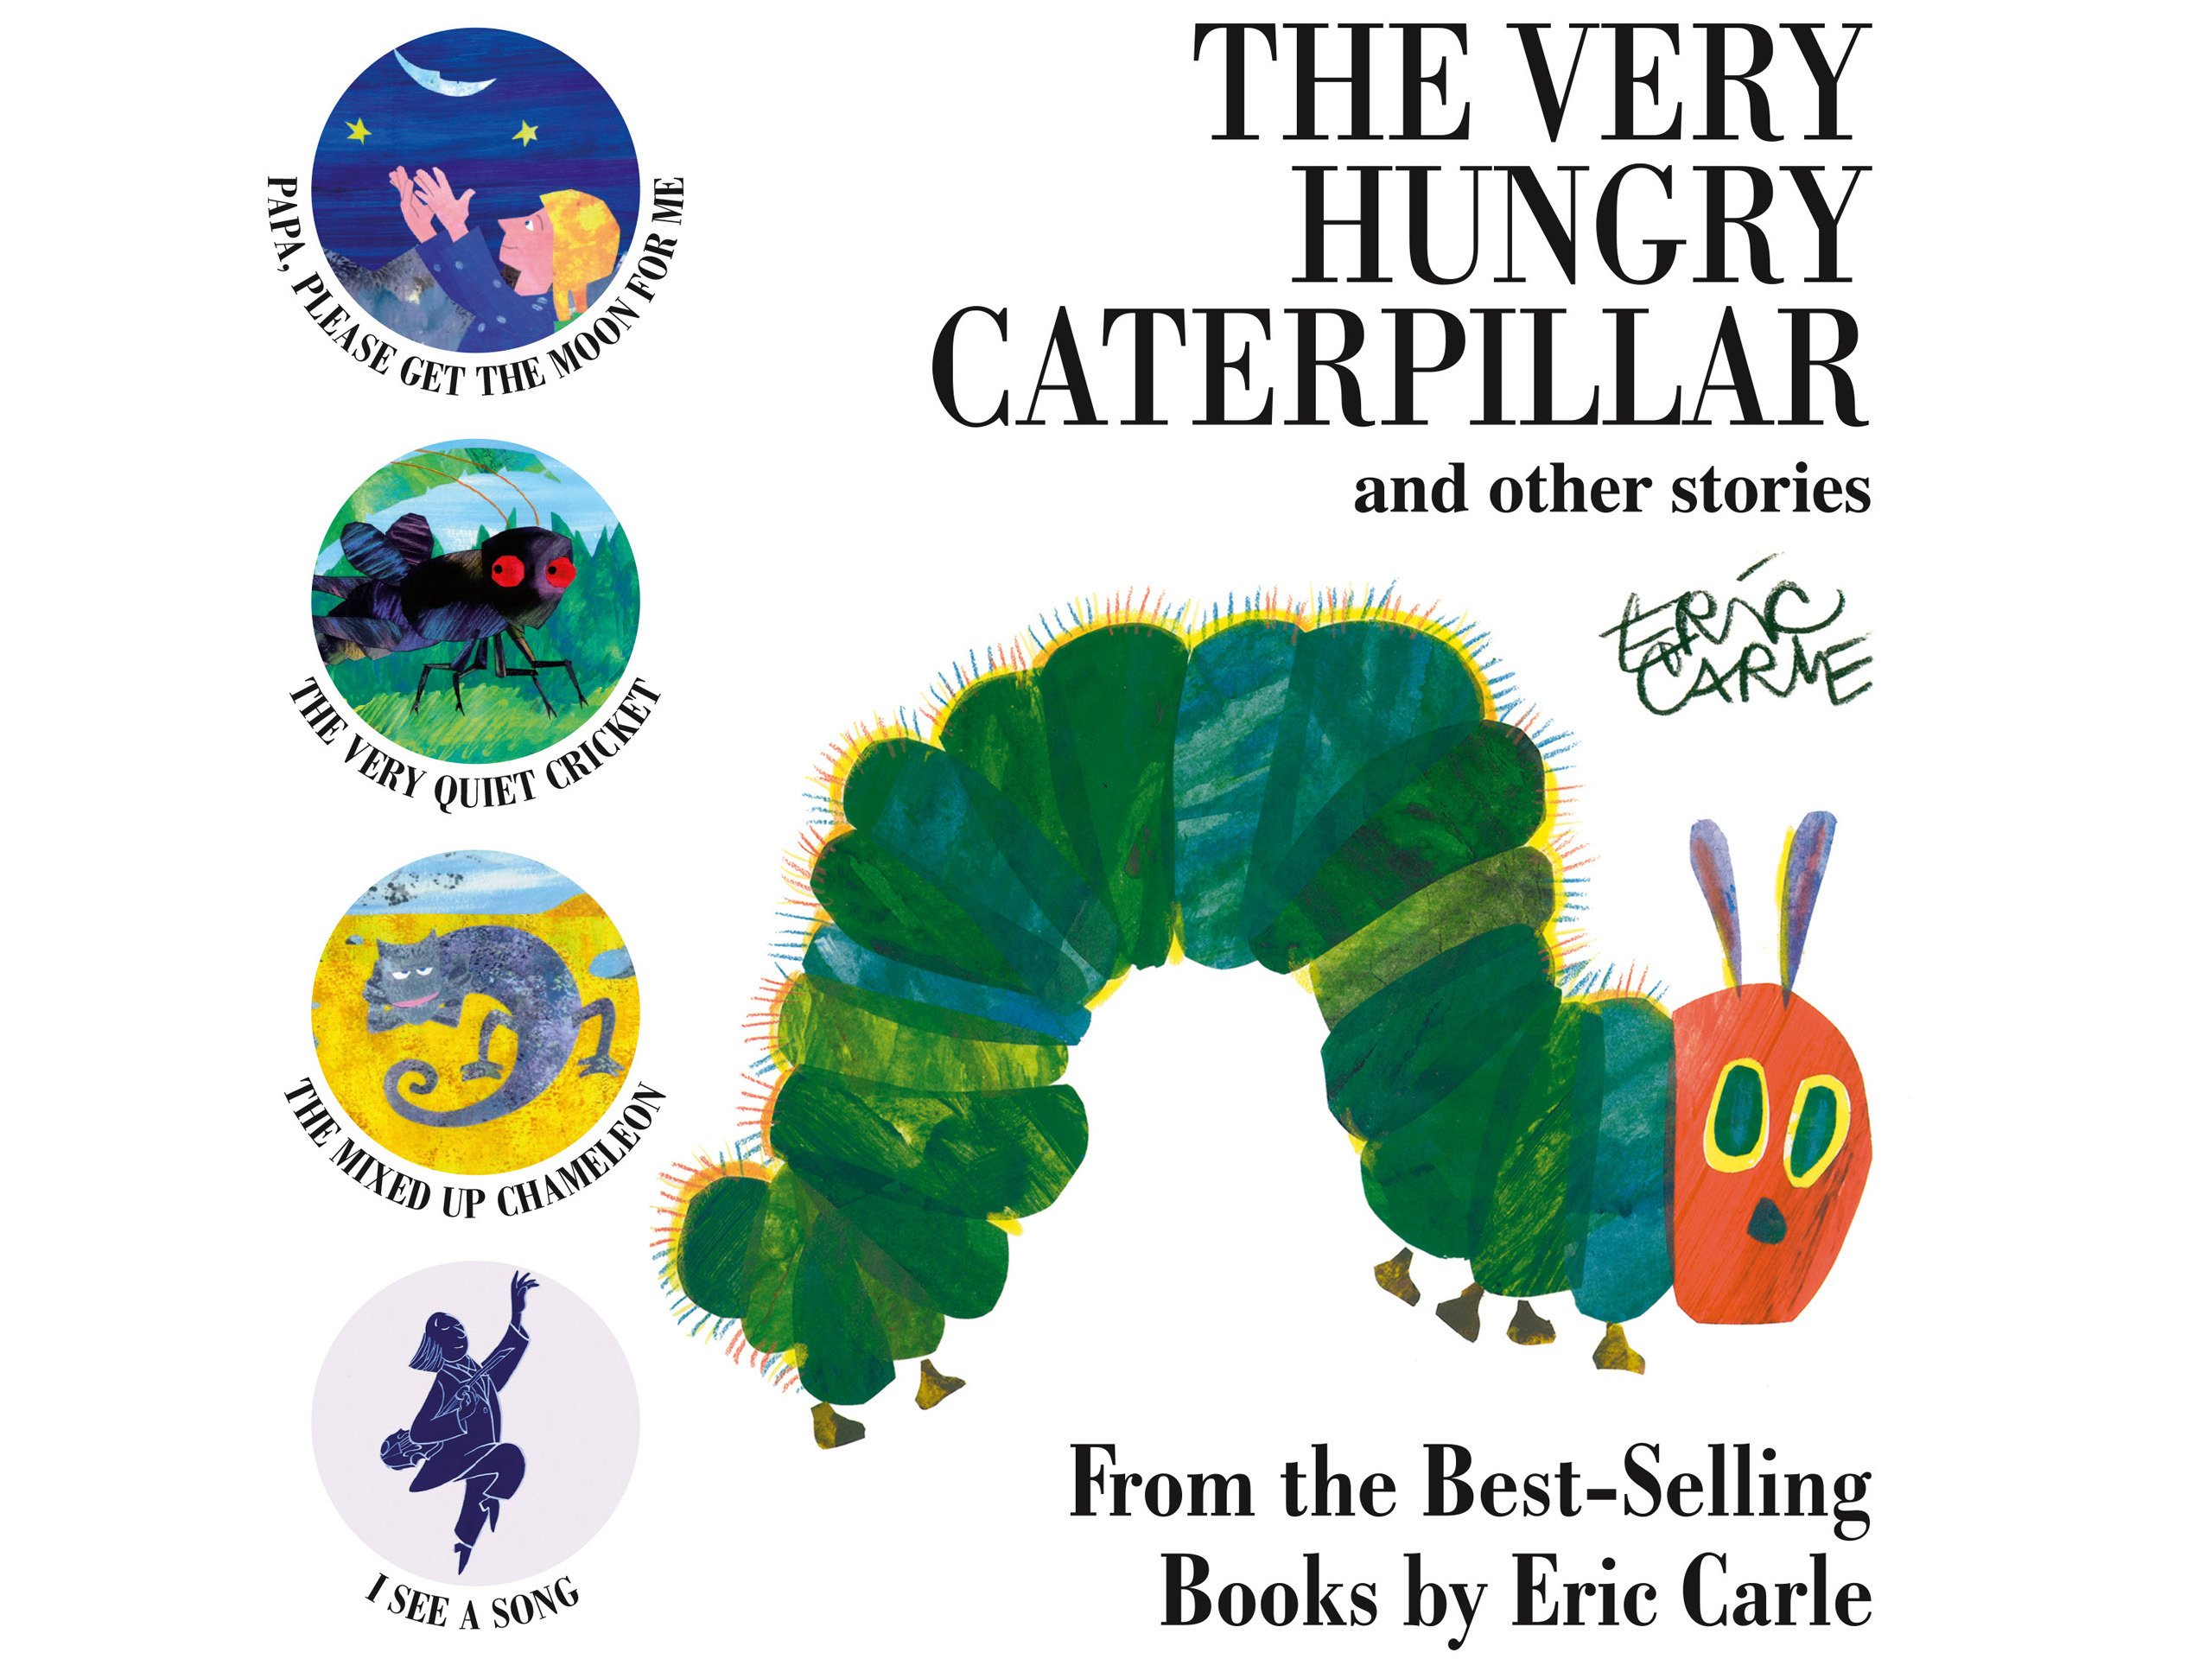 Amazon co uk: Watch The Very Hungry Caterpillar & Other